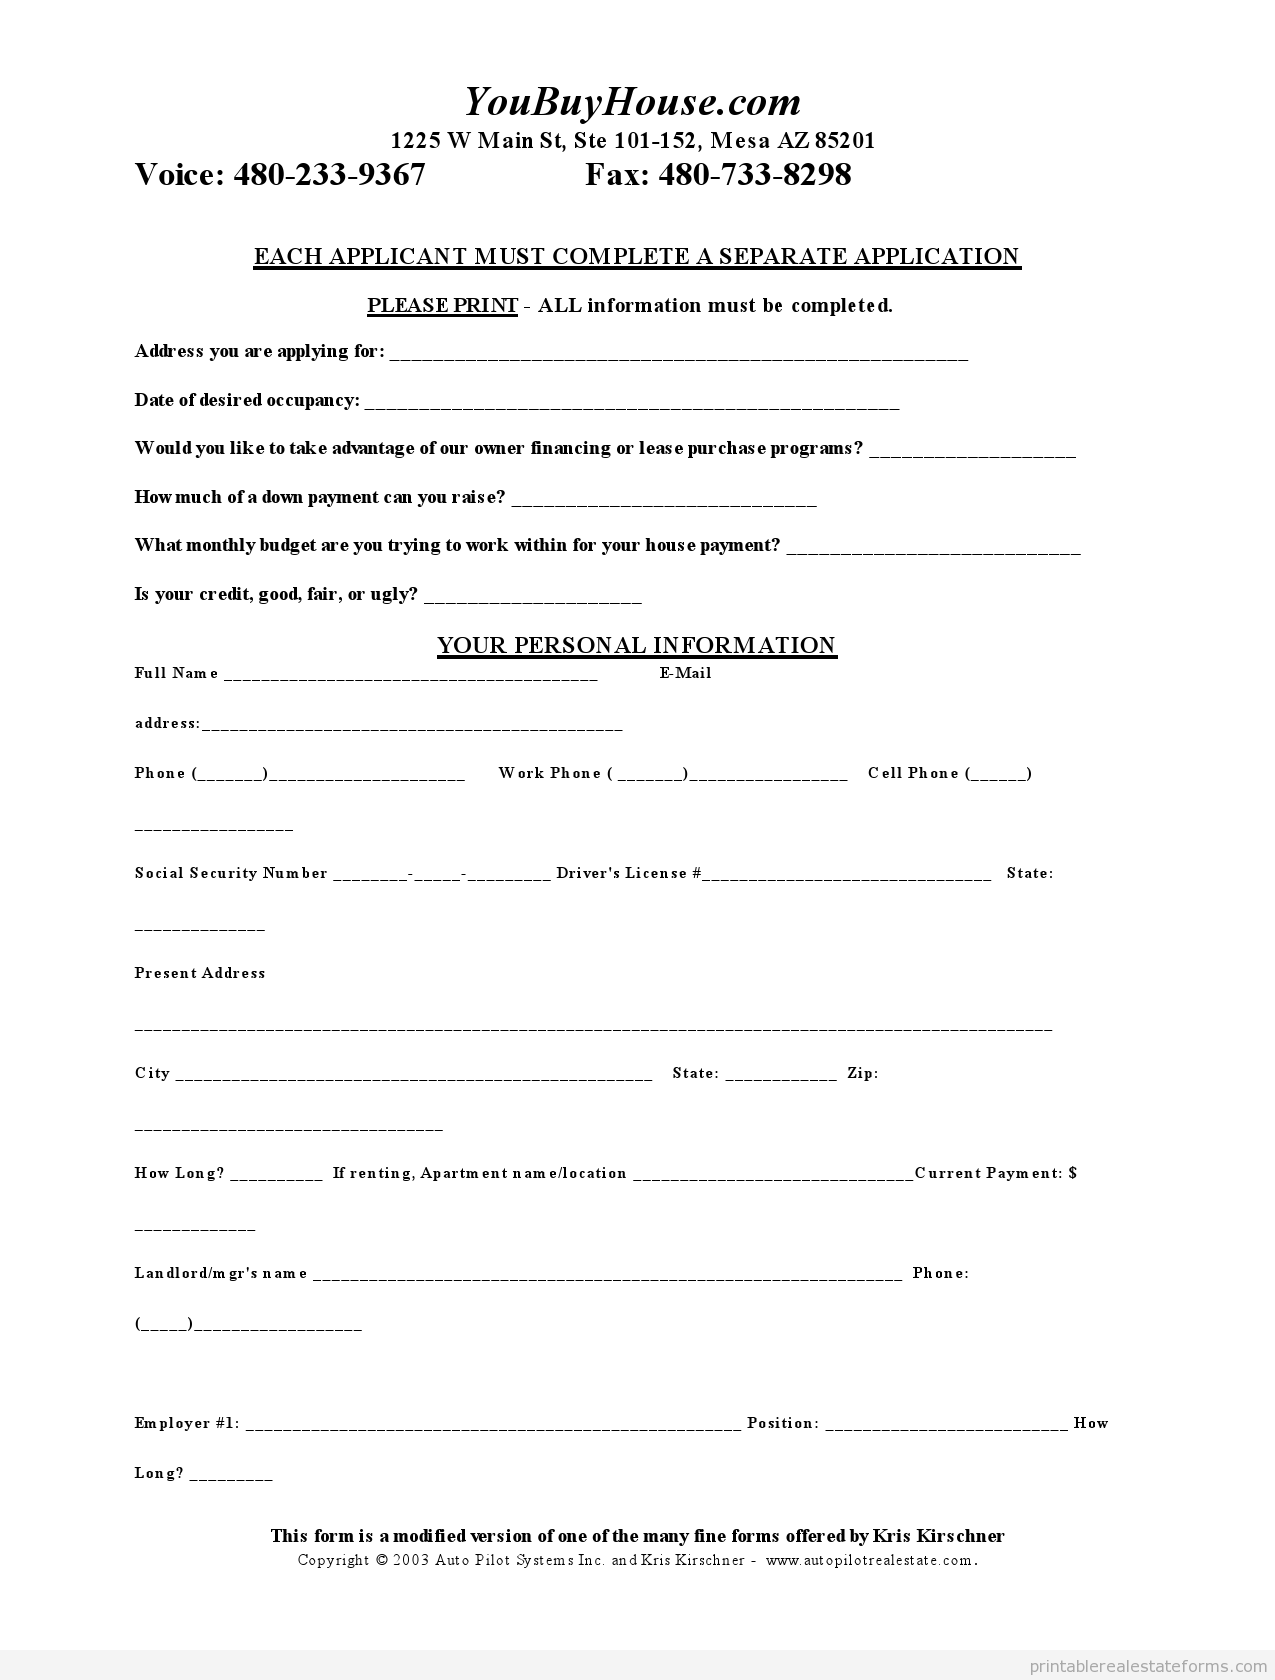 simple credit application form